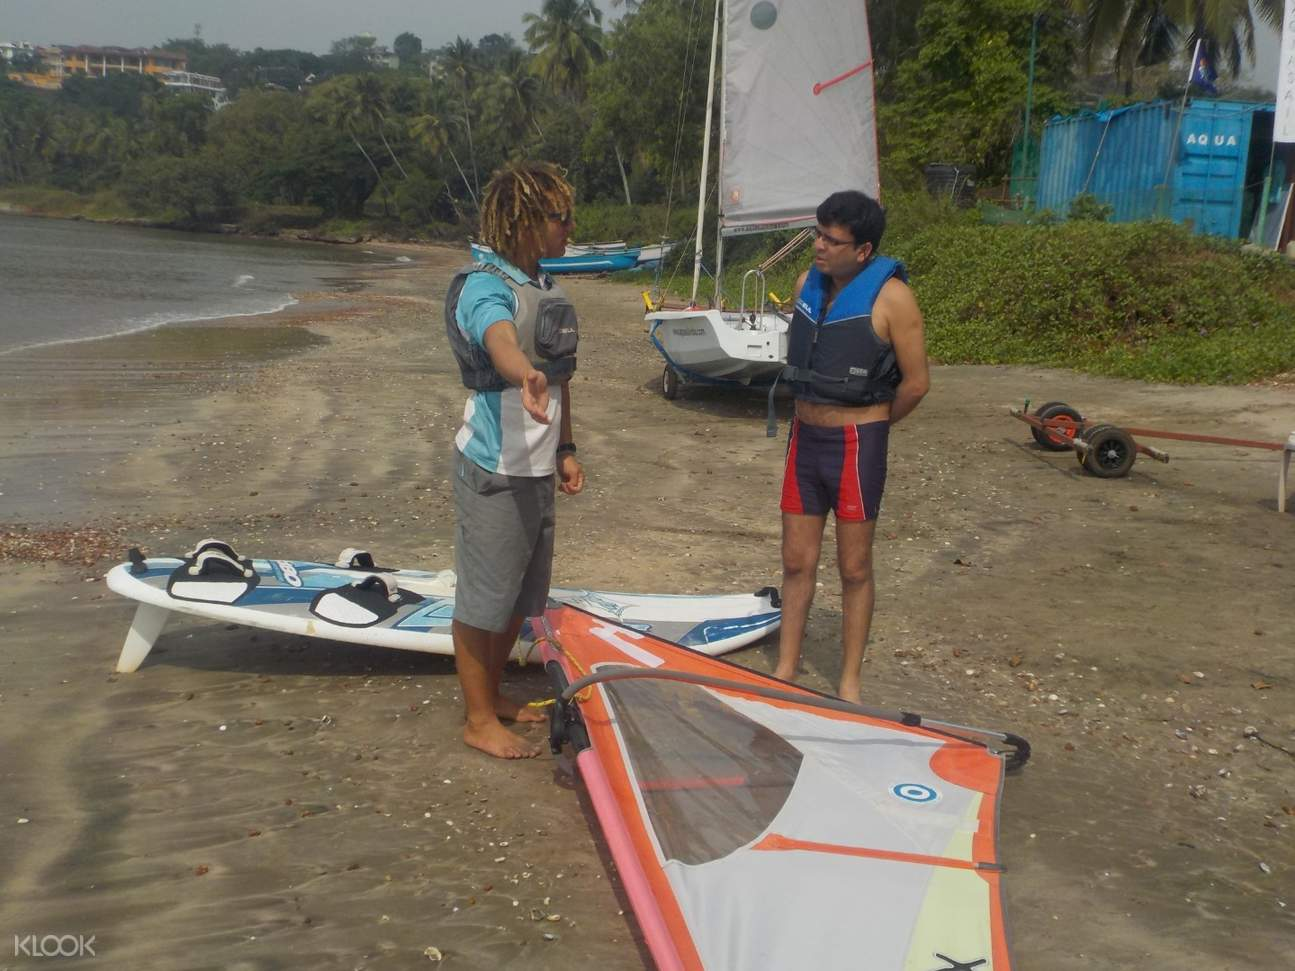 tourists learn windsurfing from instructor